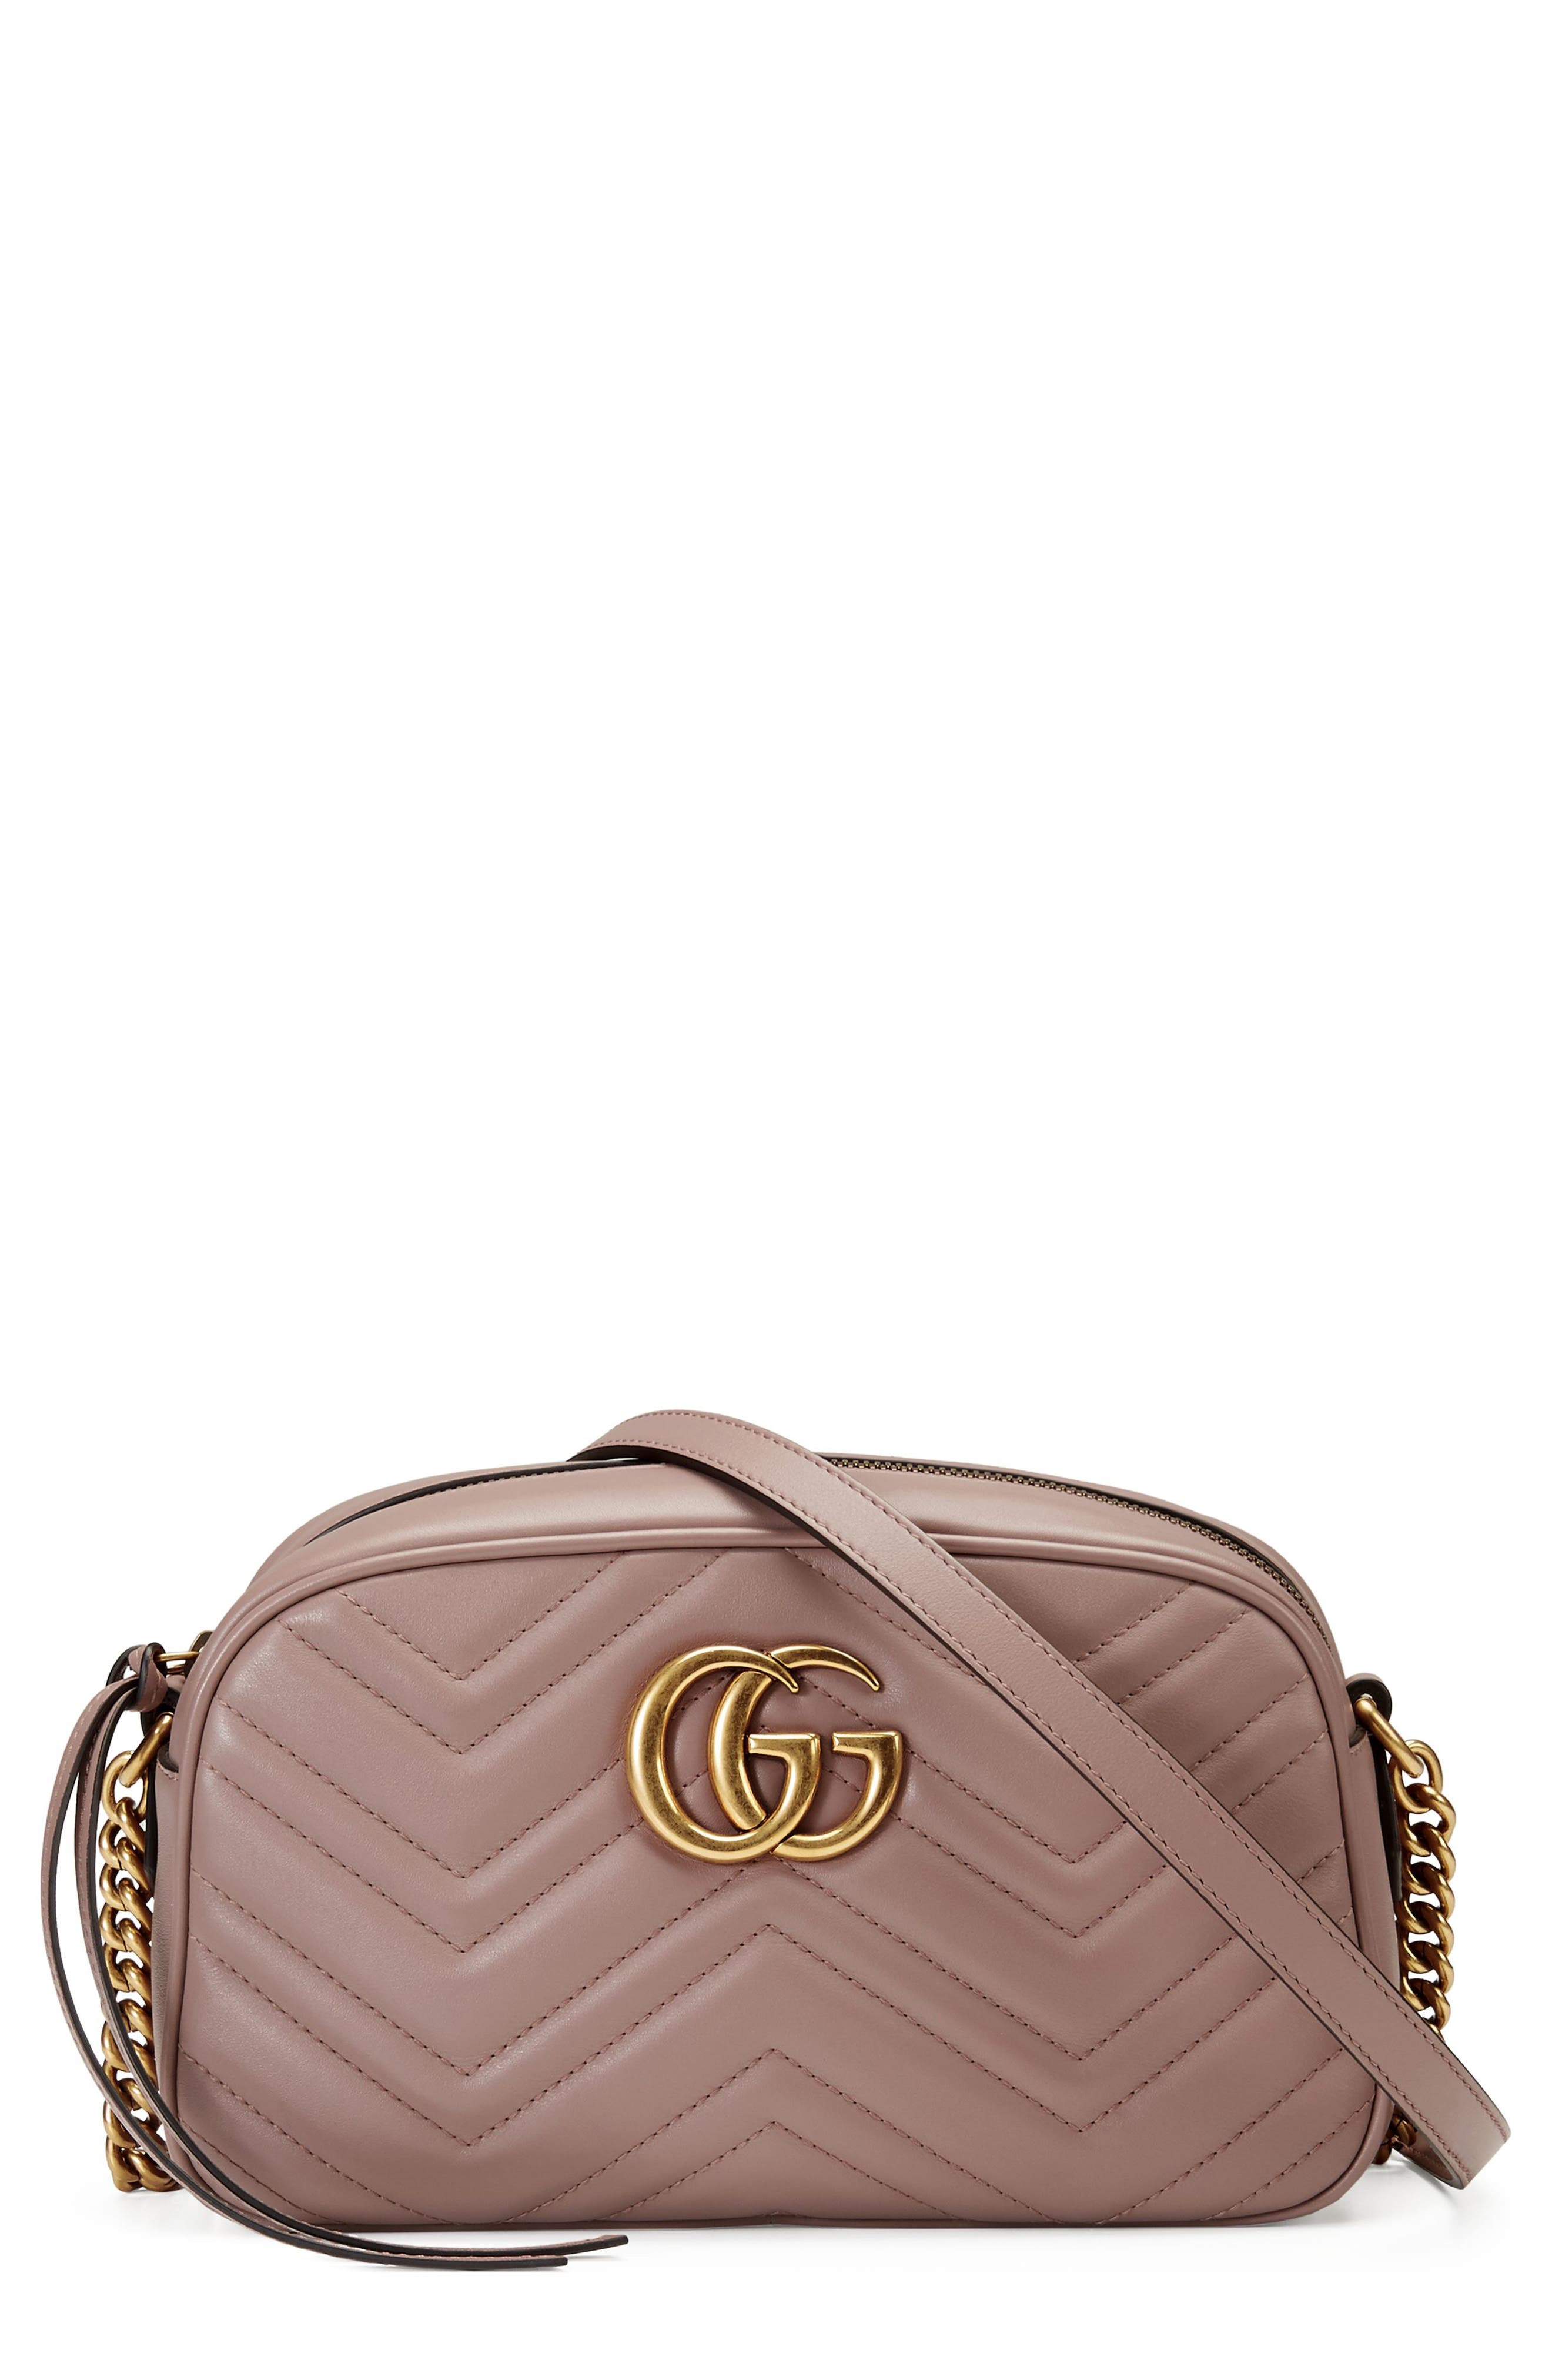 Gucci Small Gg Marmont 2.0 Matelasse Leather Camera Bag - Beige